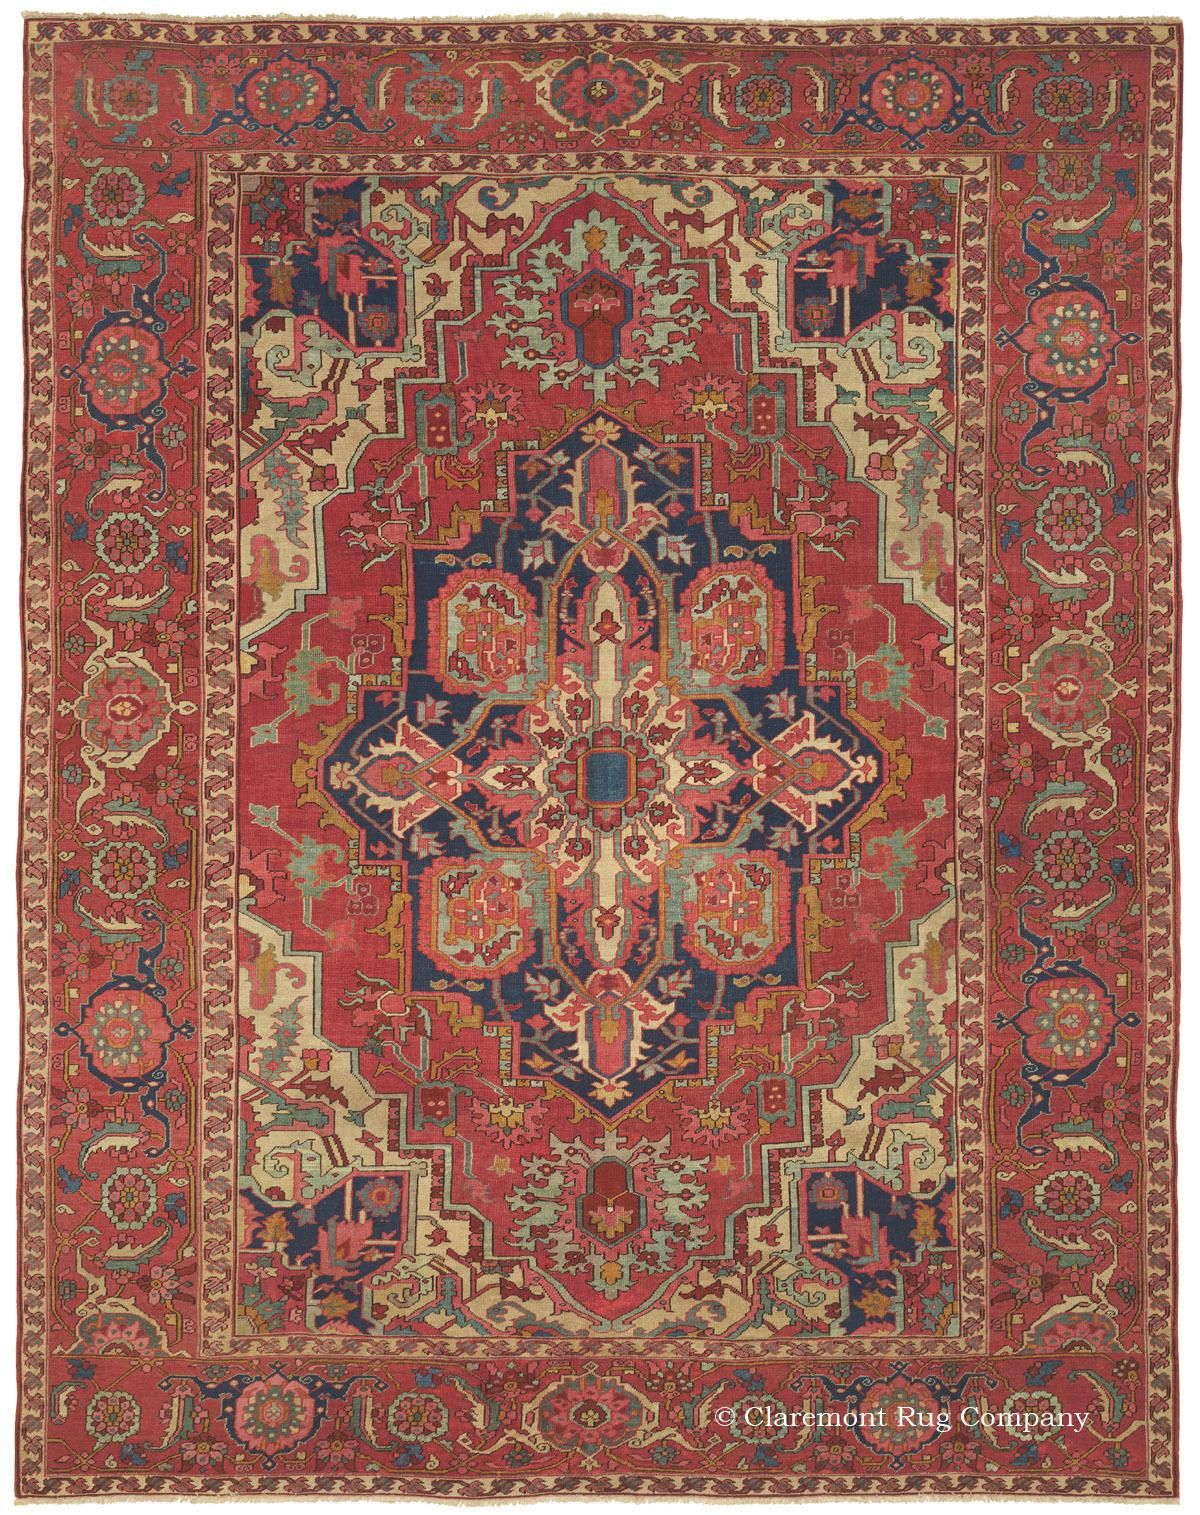 Antique Serapi Rugs And Carpets From Northwest Persia Rugs On Carpet Antique Persian Rug Antique Oriental Rugs